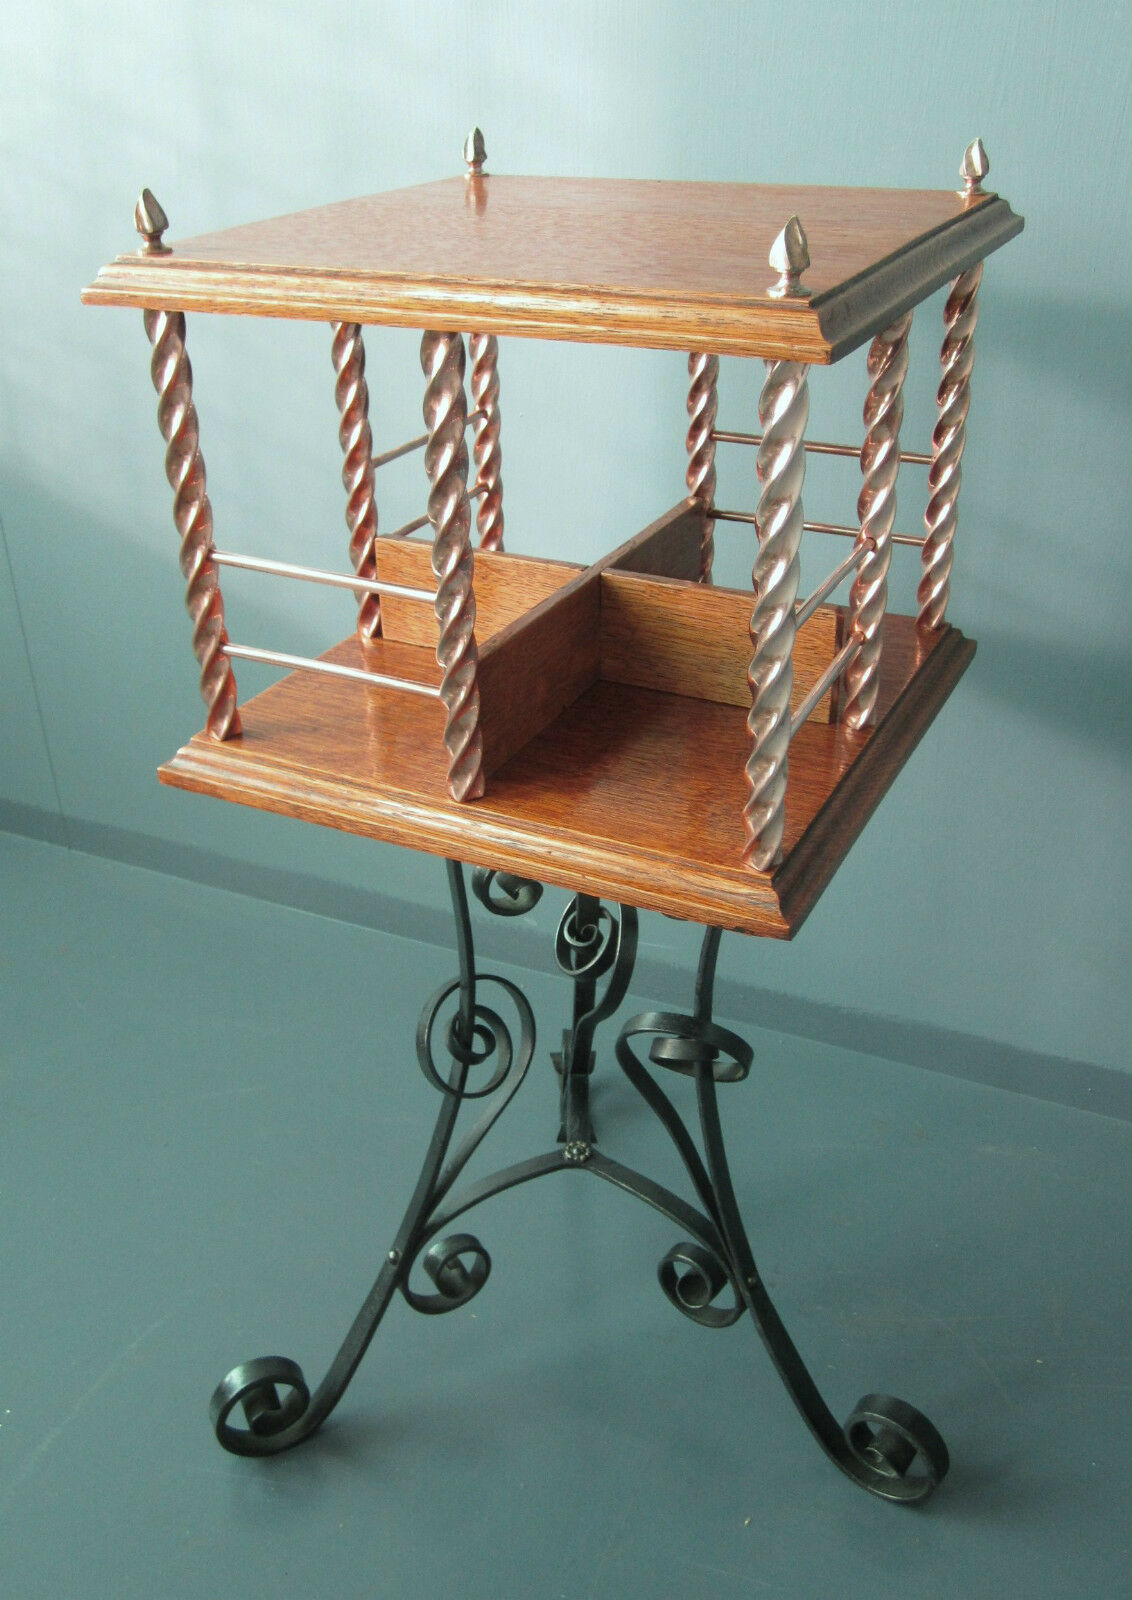 Antique Arts And Crafts Revolving Bookcase In Oak, Copper And Iron - Victorian.